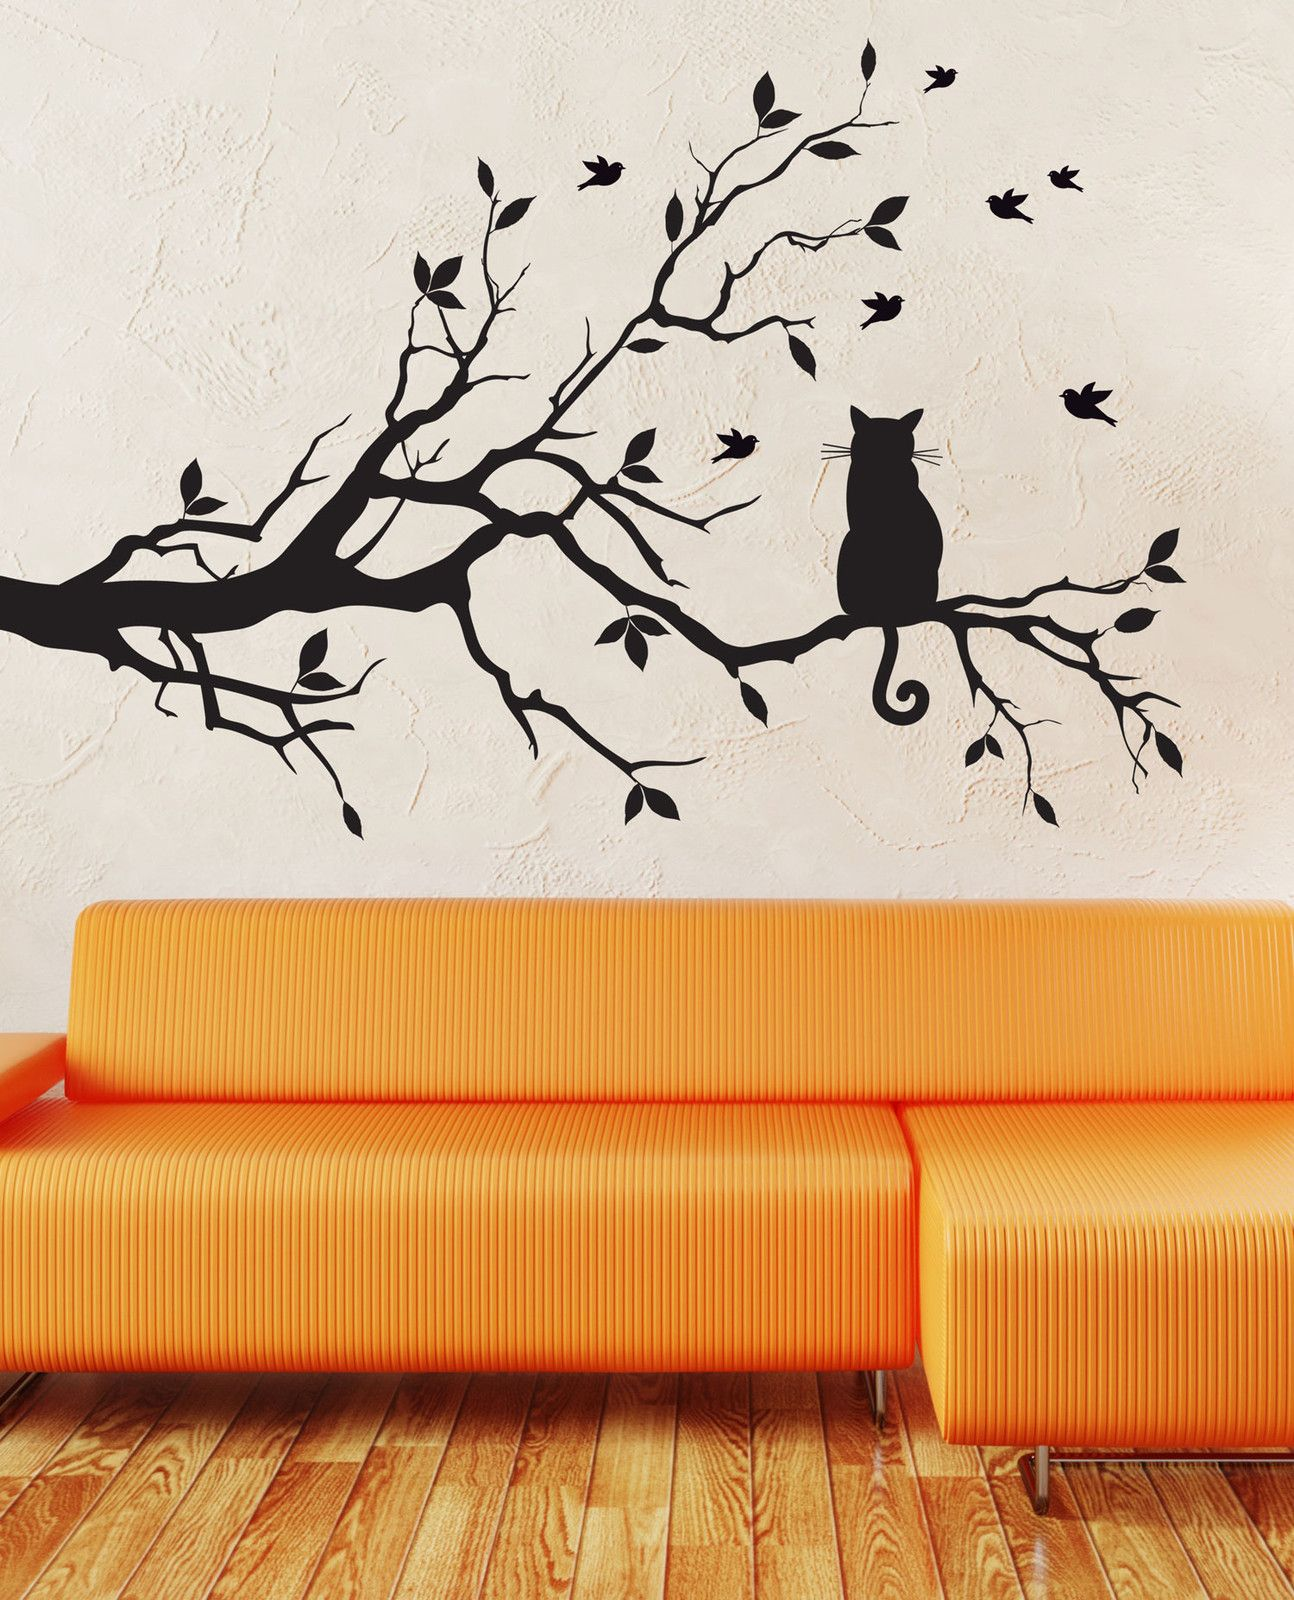 Wall Art Decal Sticker Birds And Cat On Tree Branches Decal Wall Art Tree Wall Art Wall Art